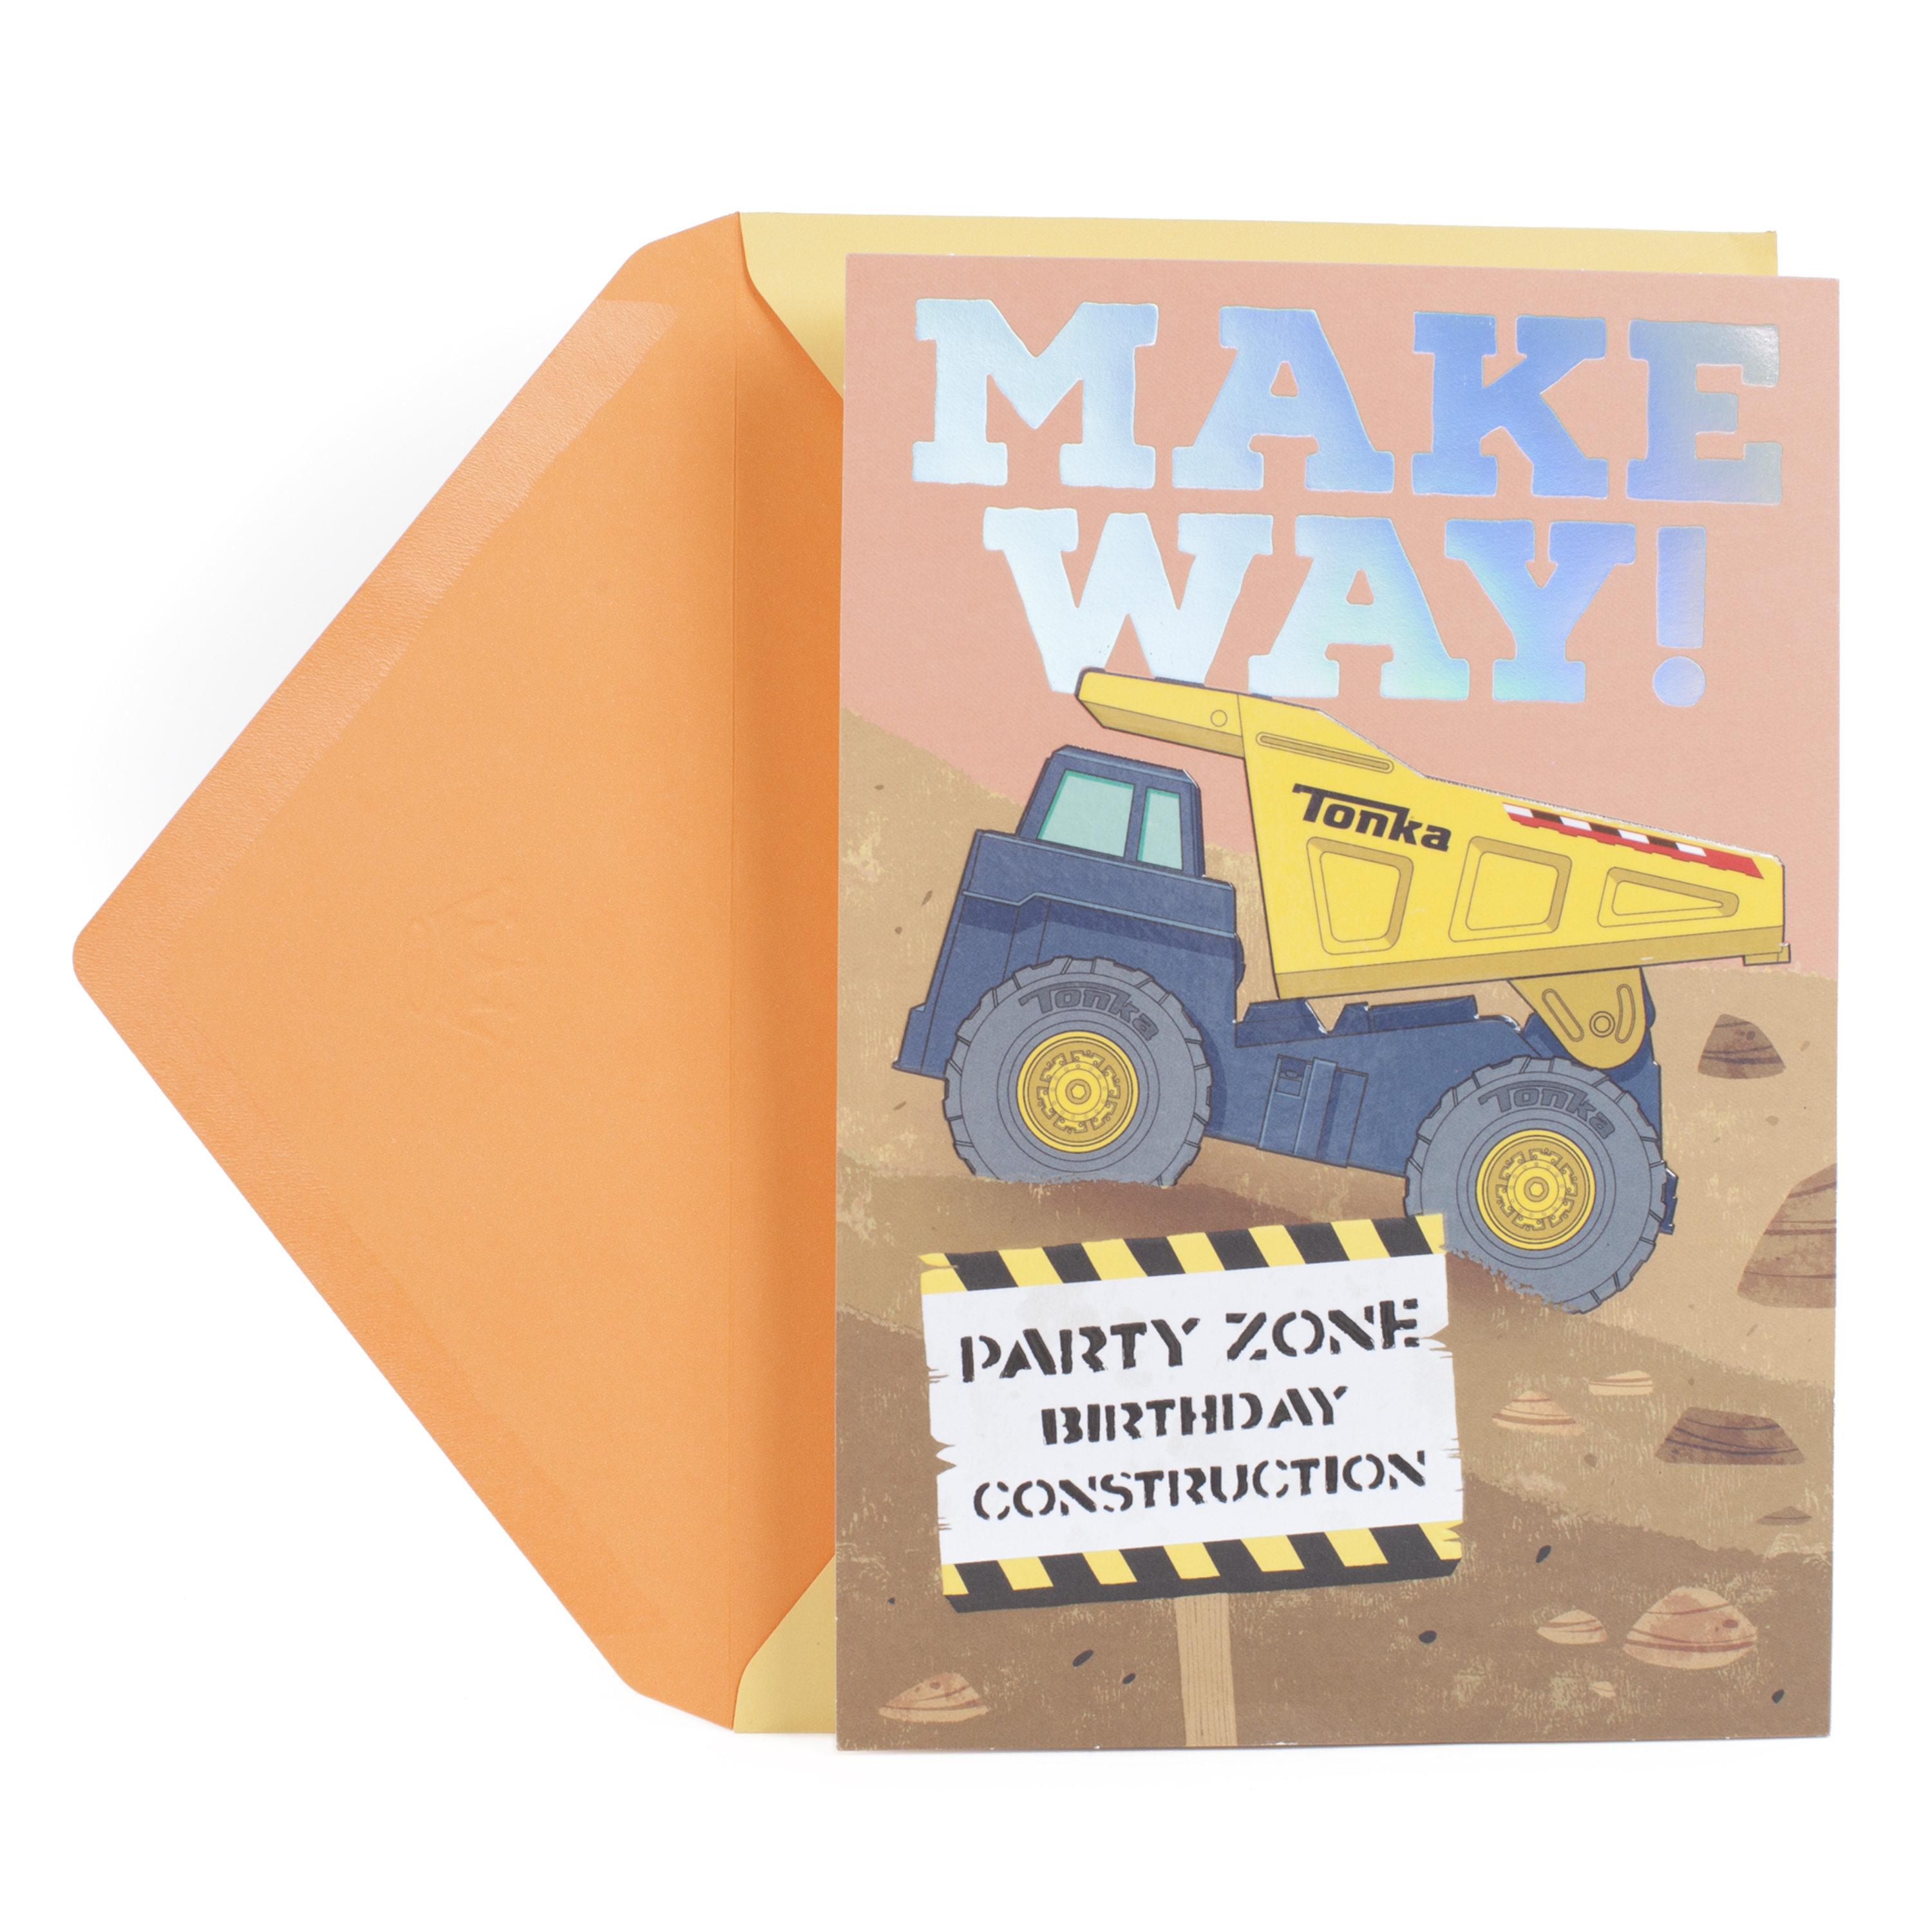 Hallmark Birthday Greeting Card for Kids (Hasbro Tonka Truck)